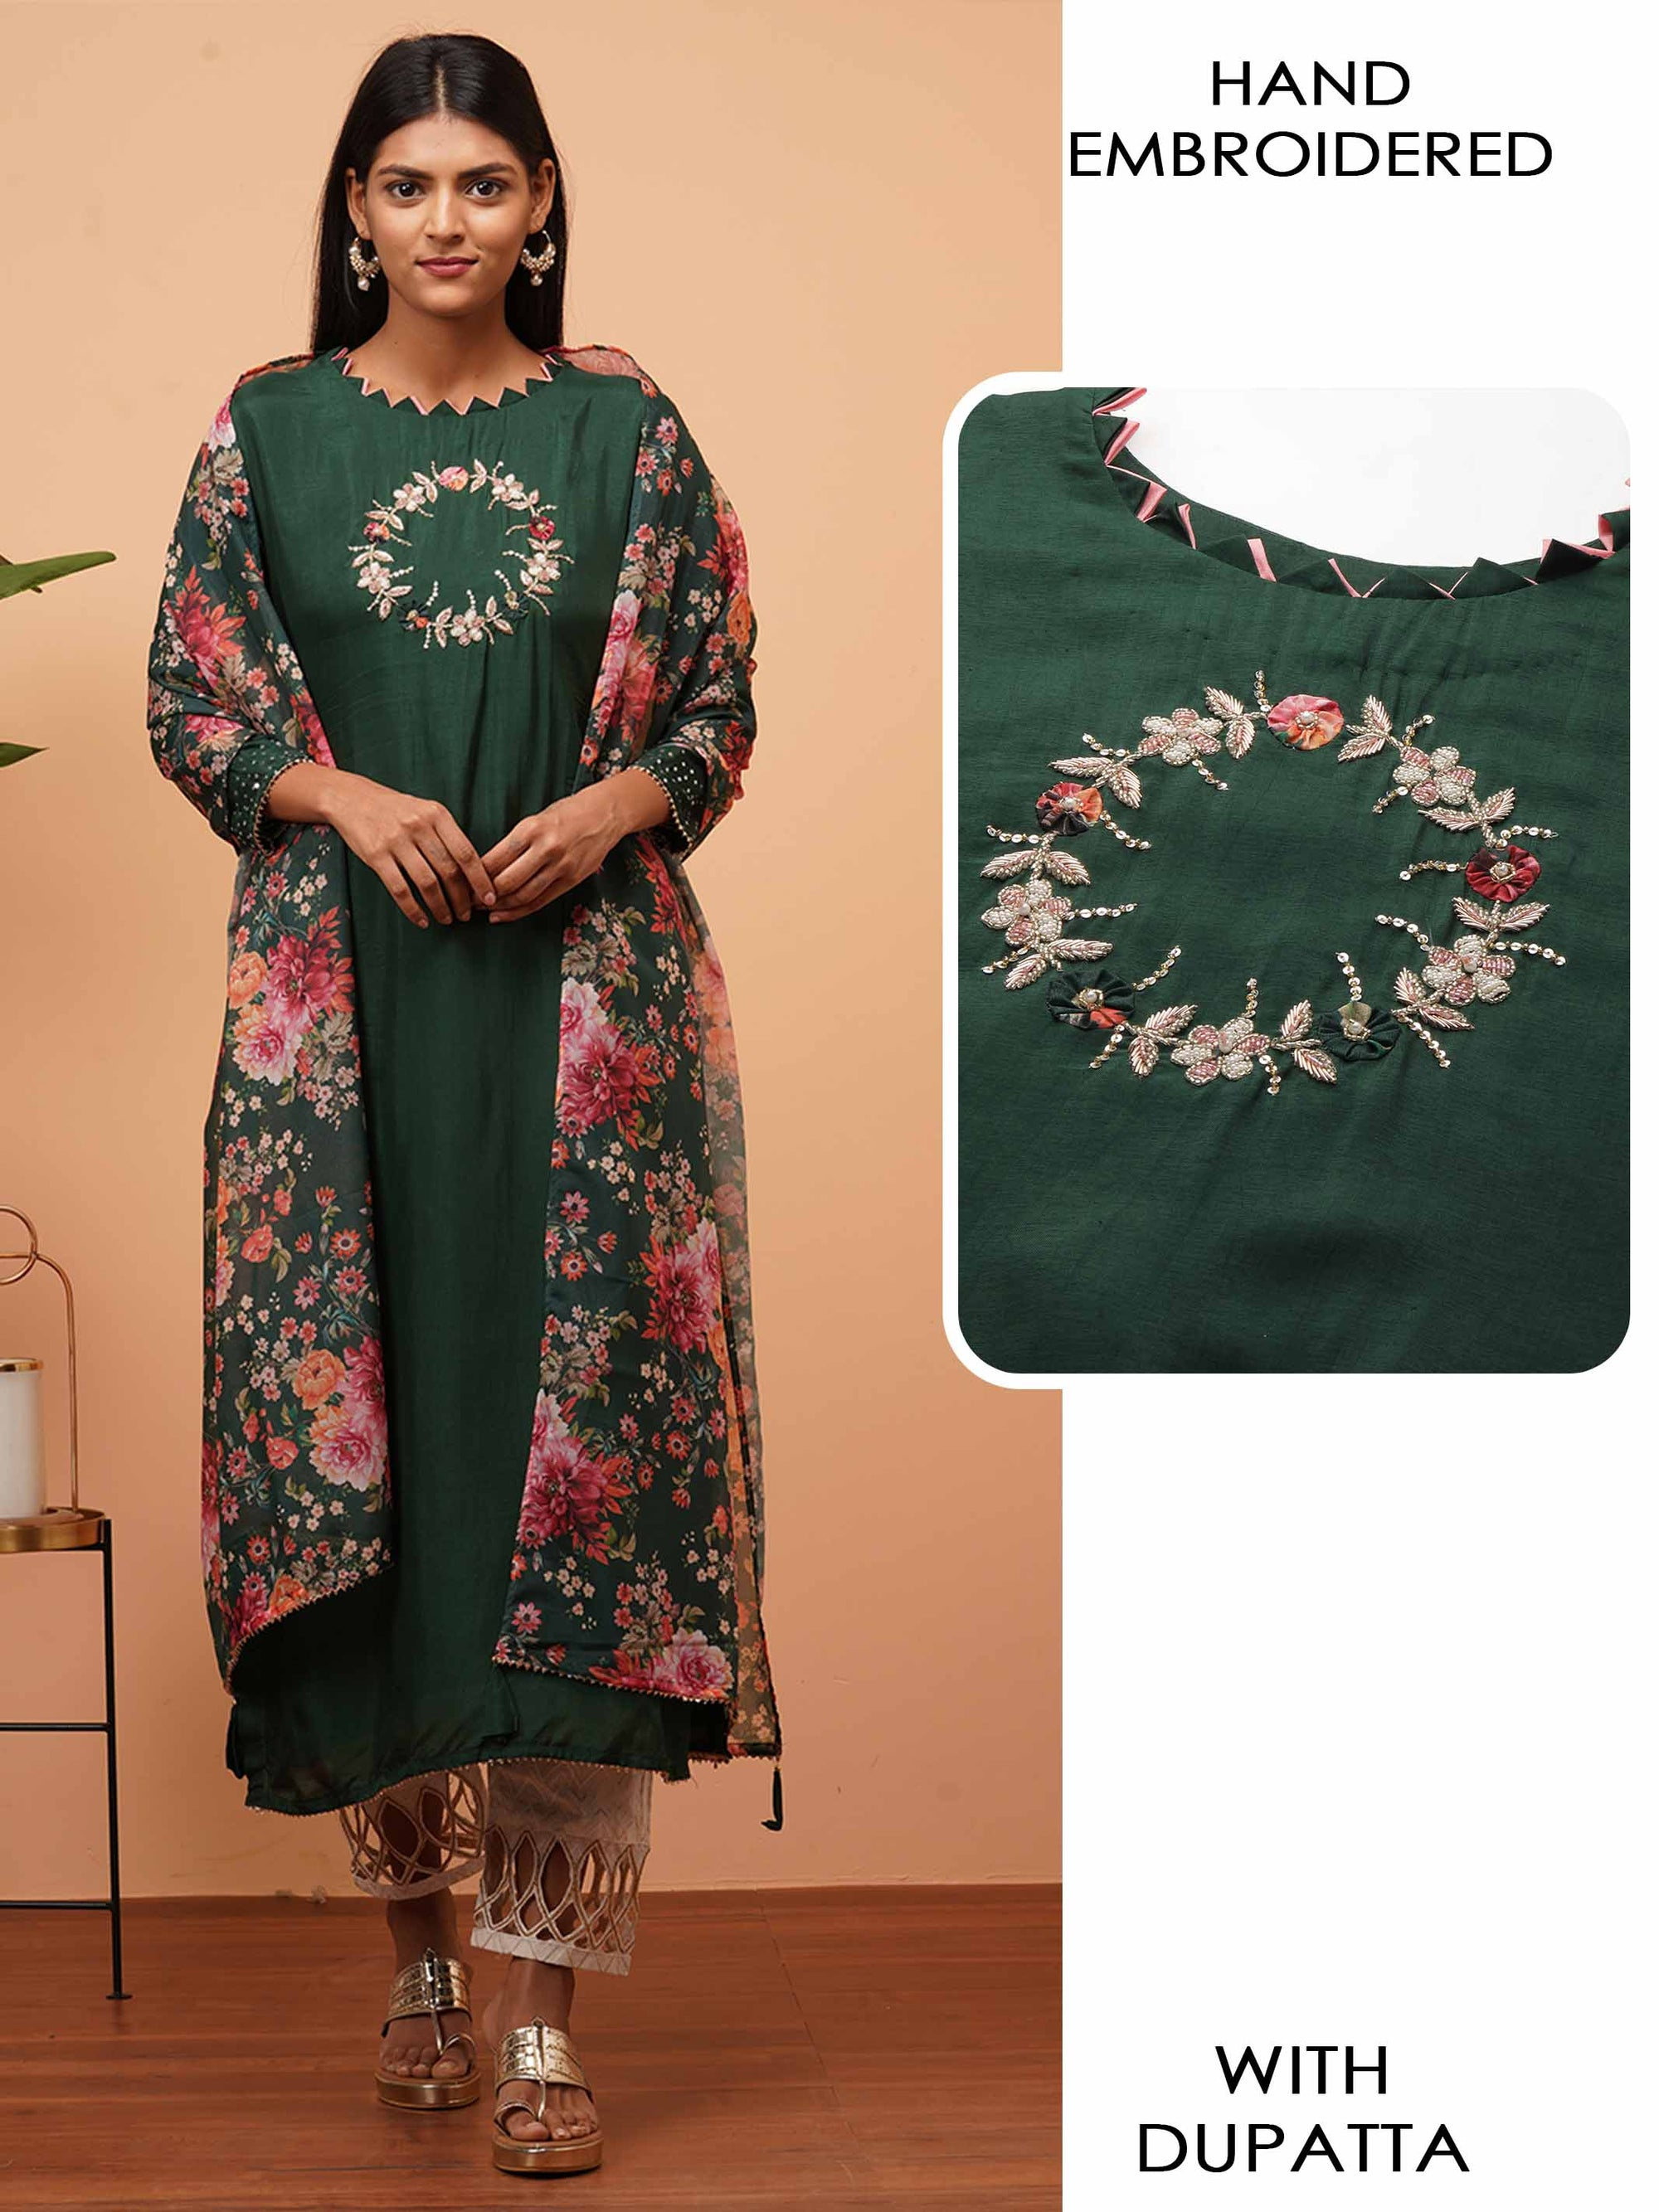 Floral Applique & Embellished Kurta with Dense Floral Printed Dupatta - Bottle Green